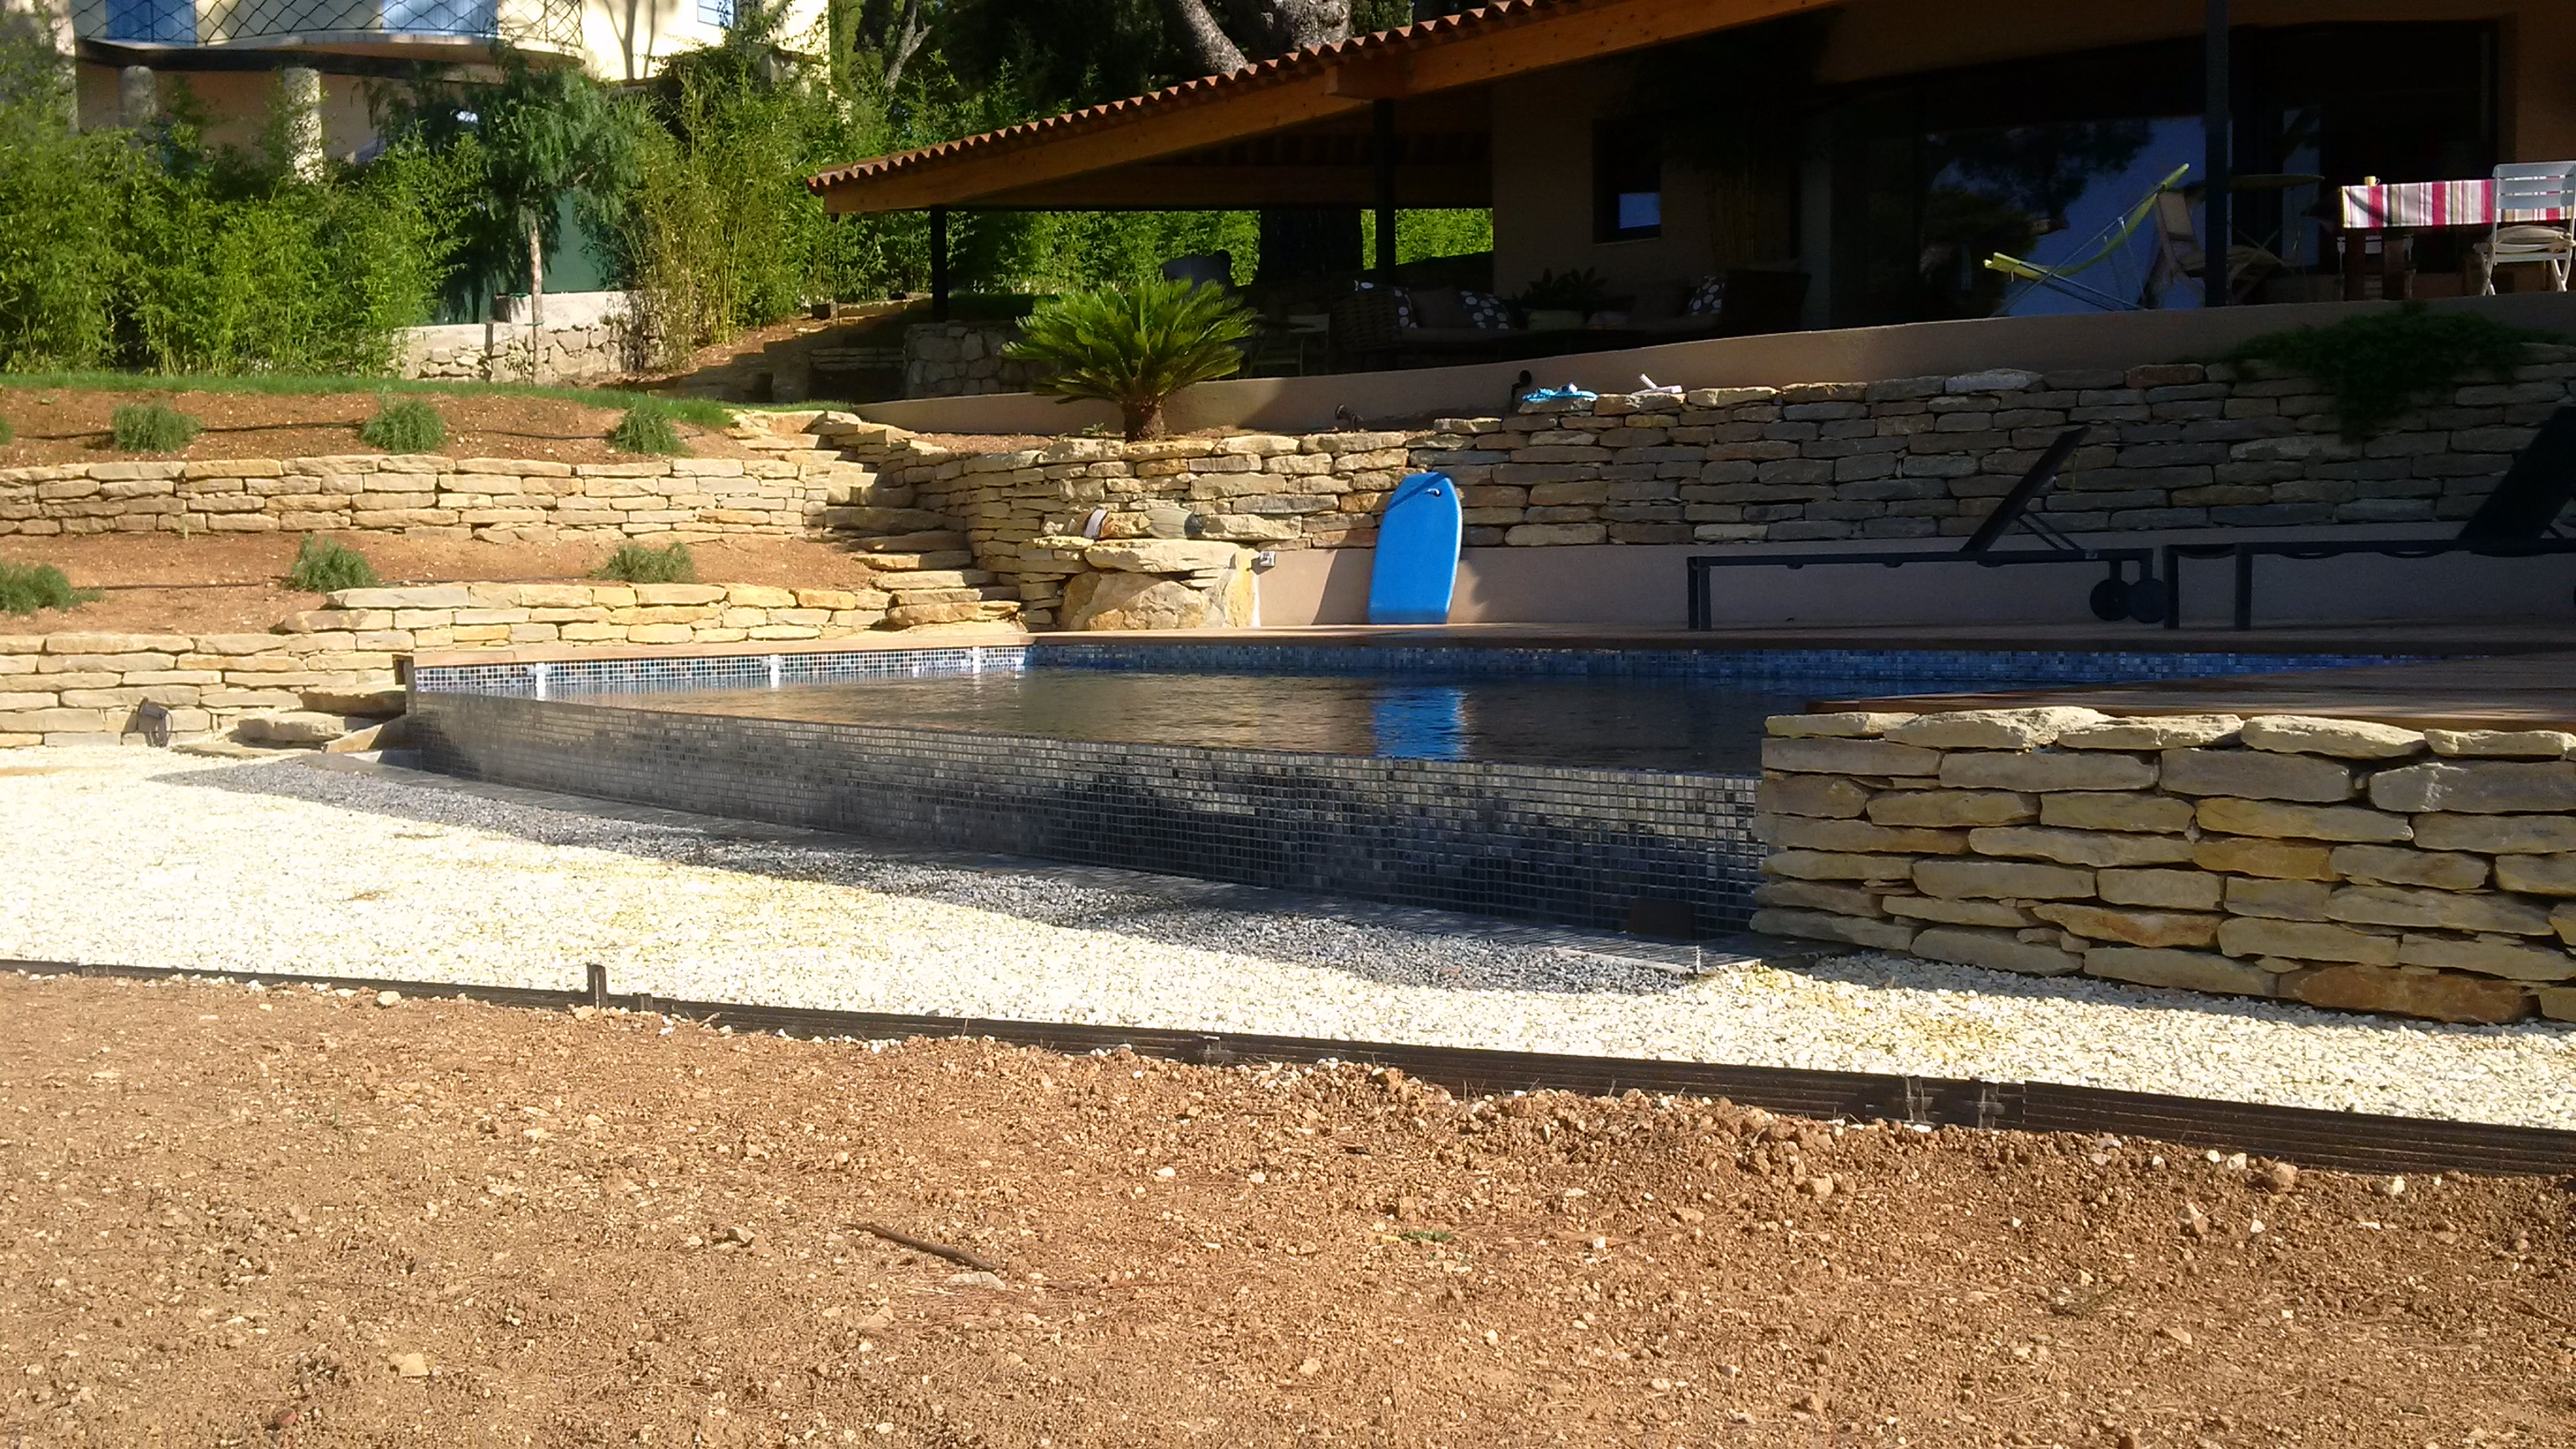 La piscine aquaset piscines traditionnelles brignoles for Construction piscine traditionnelle